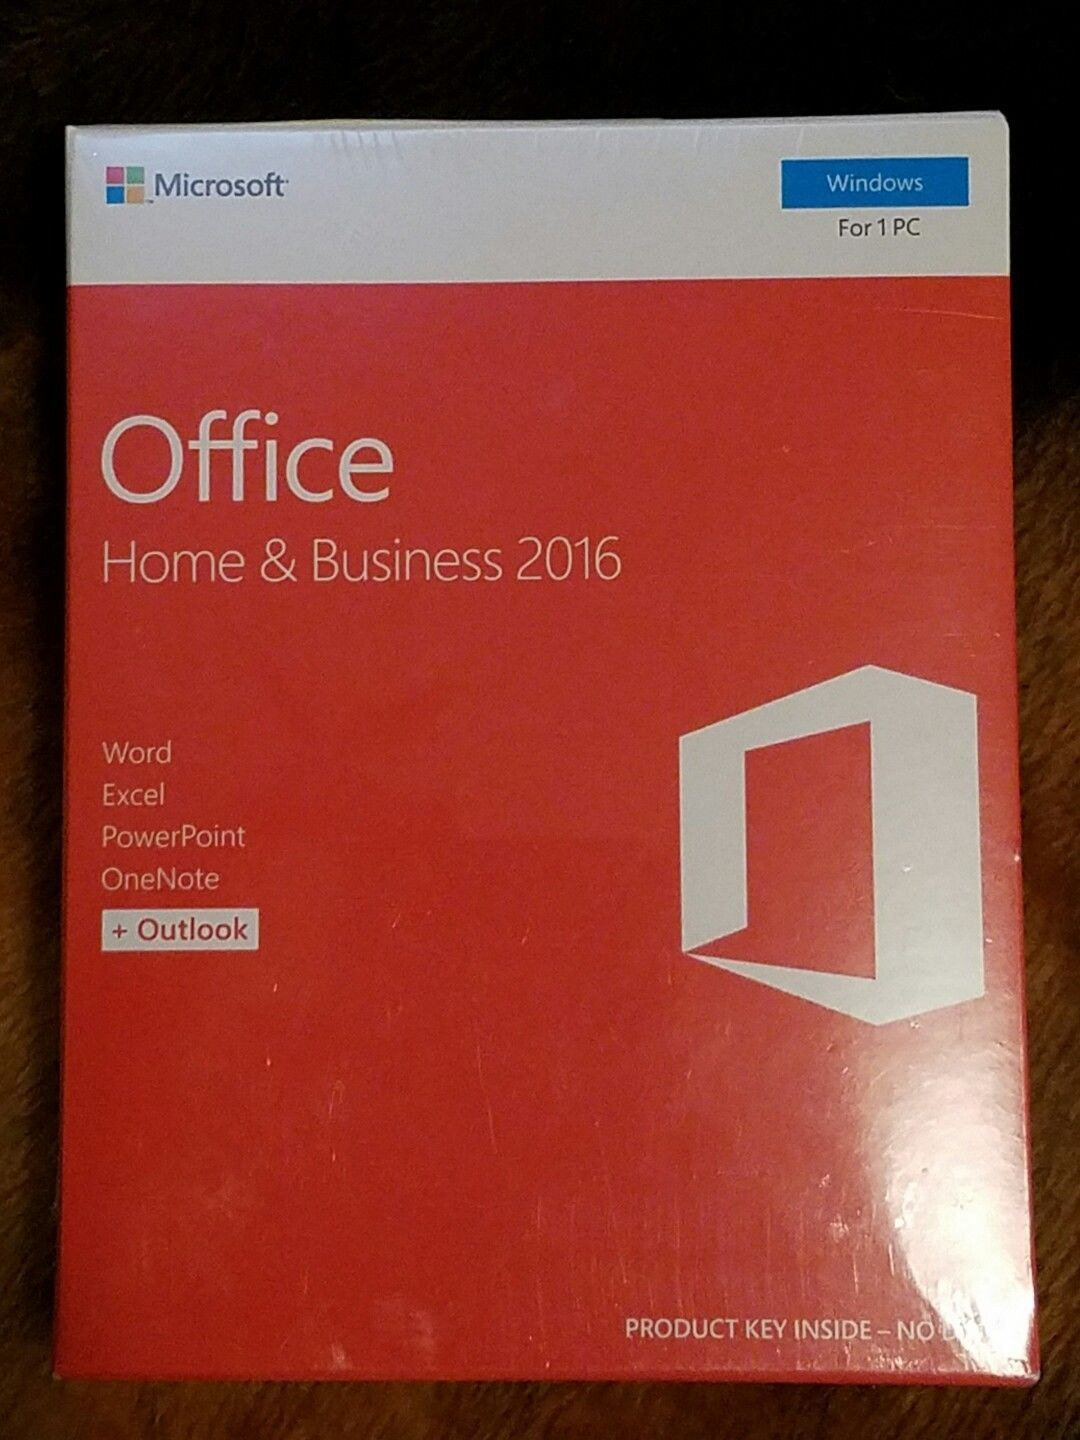 Running windows vista and microsoft office including powerpoint - T5d 02929 Microsoft Office Home And Business 2016 Sealed Word Excel Powerpoint